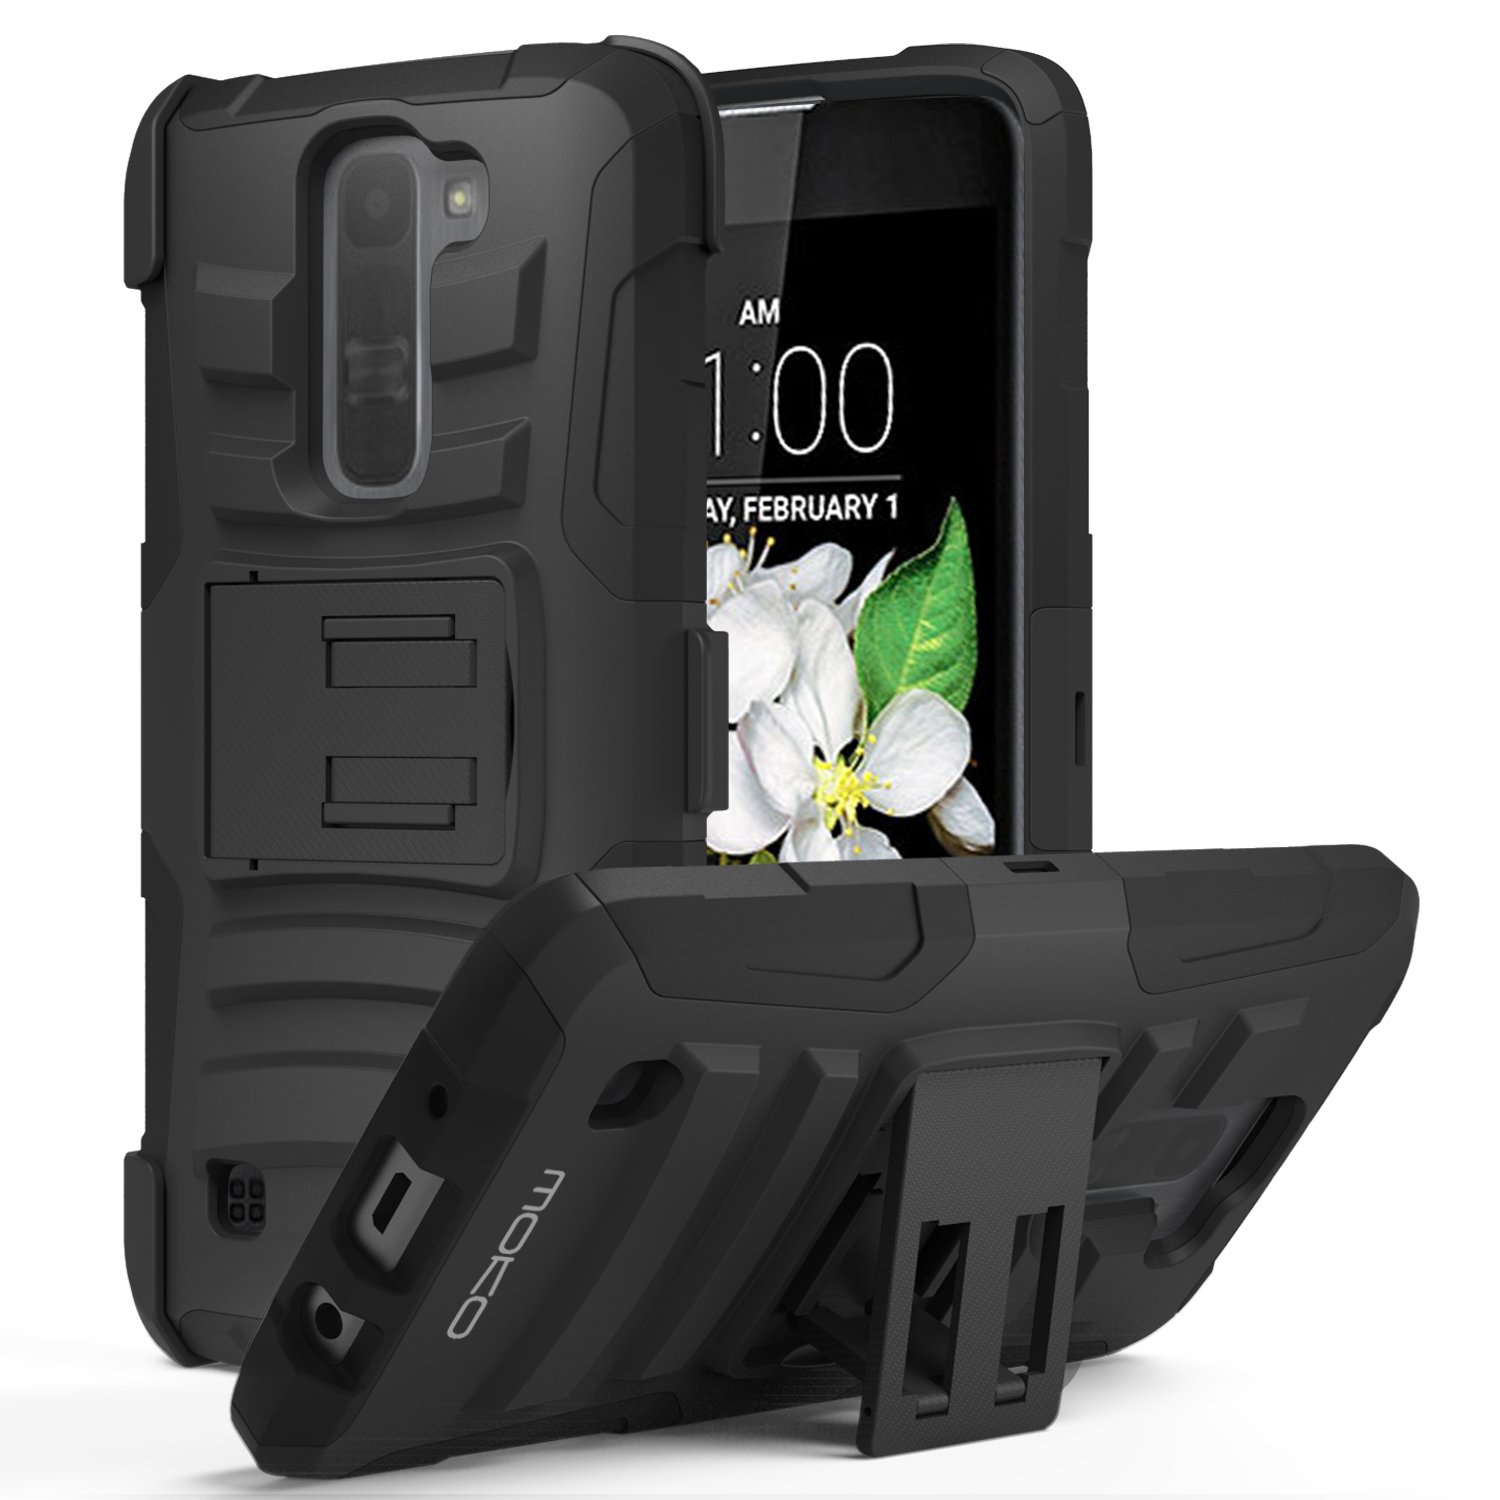 LG Tribute 5 Case, MoKo Shock Absorbing Hard Cover Ultra Protective Heavy Duty Case with Holster Belt Clip + Built-in Kickstand for LG Tribute 5 / LG K7 5.0 Inch (2016) - Black 4326847347